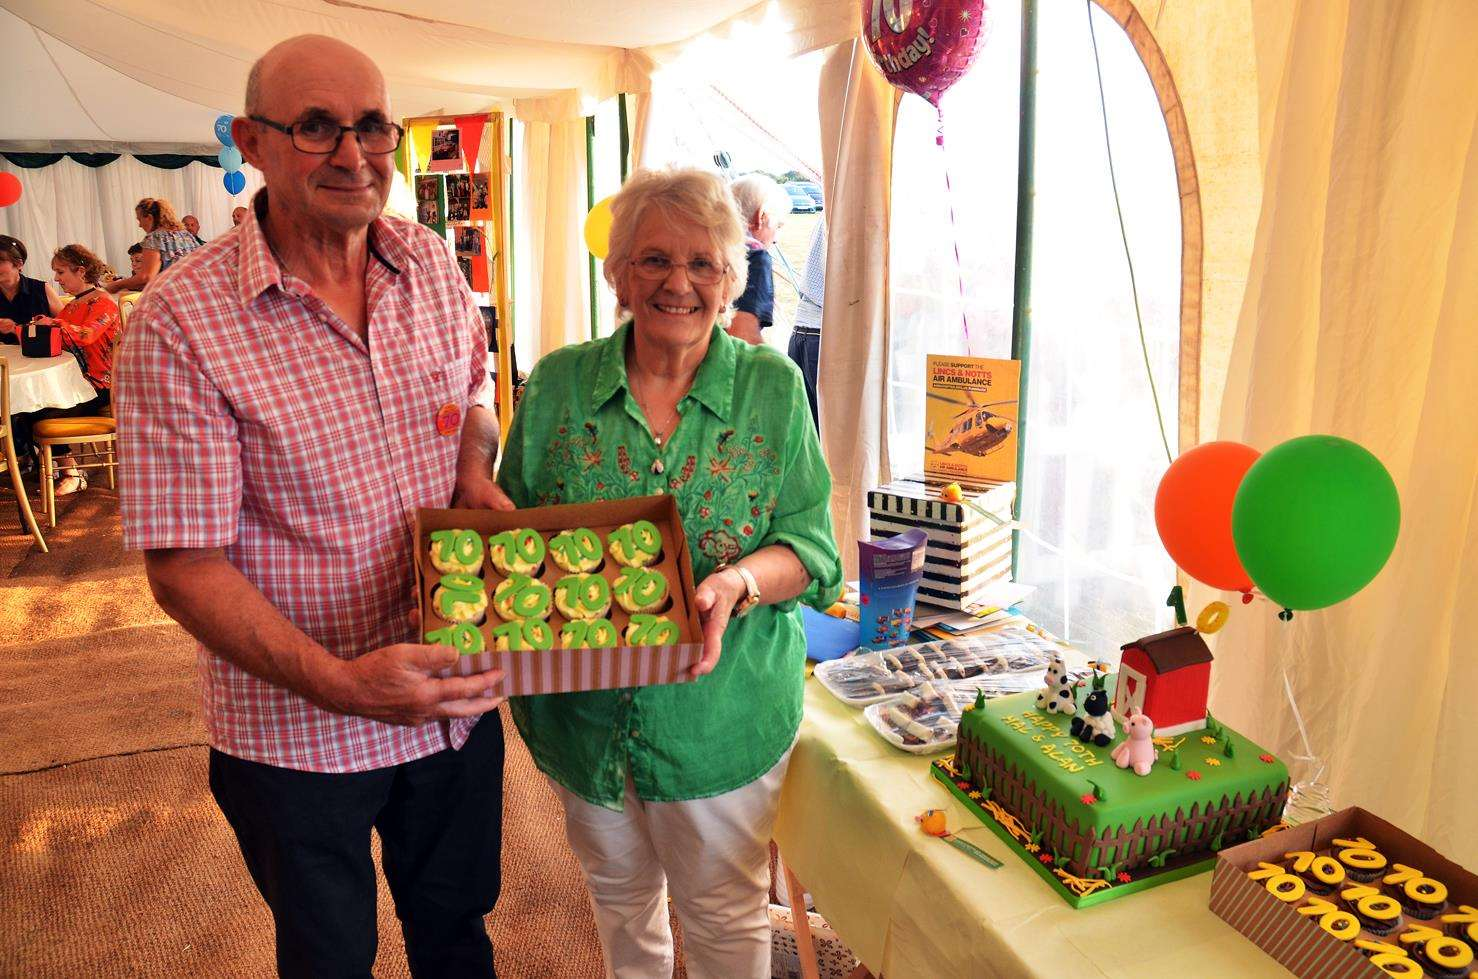 Eric and Marilyn Collishaw with one of the 70th birthday cakes made for them. Photo by Tim Wilson. 070718188SG.